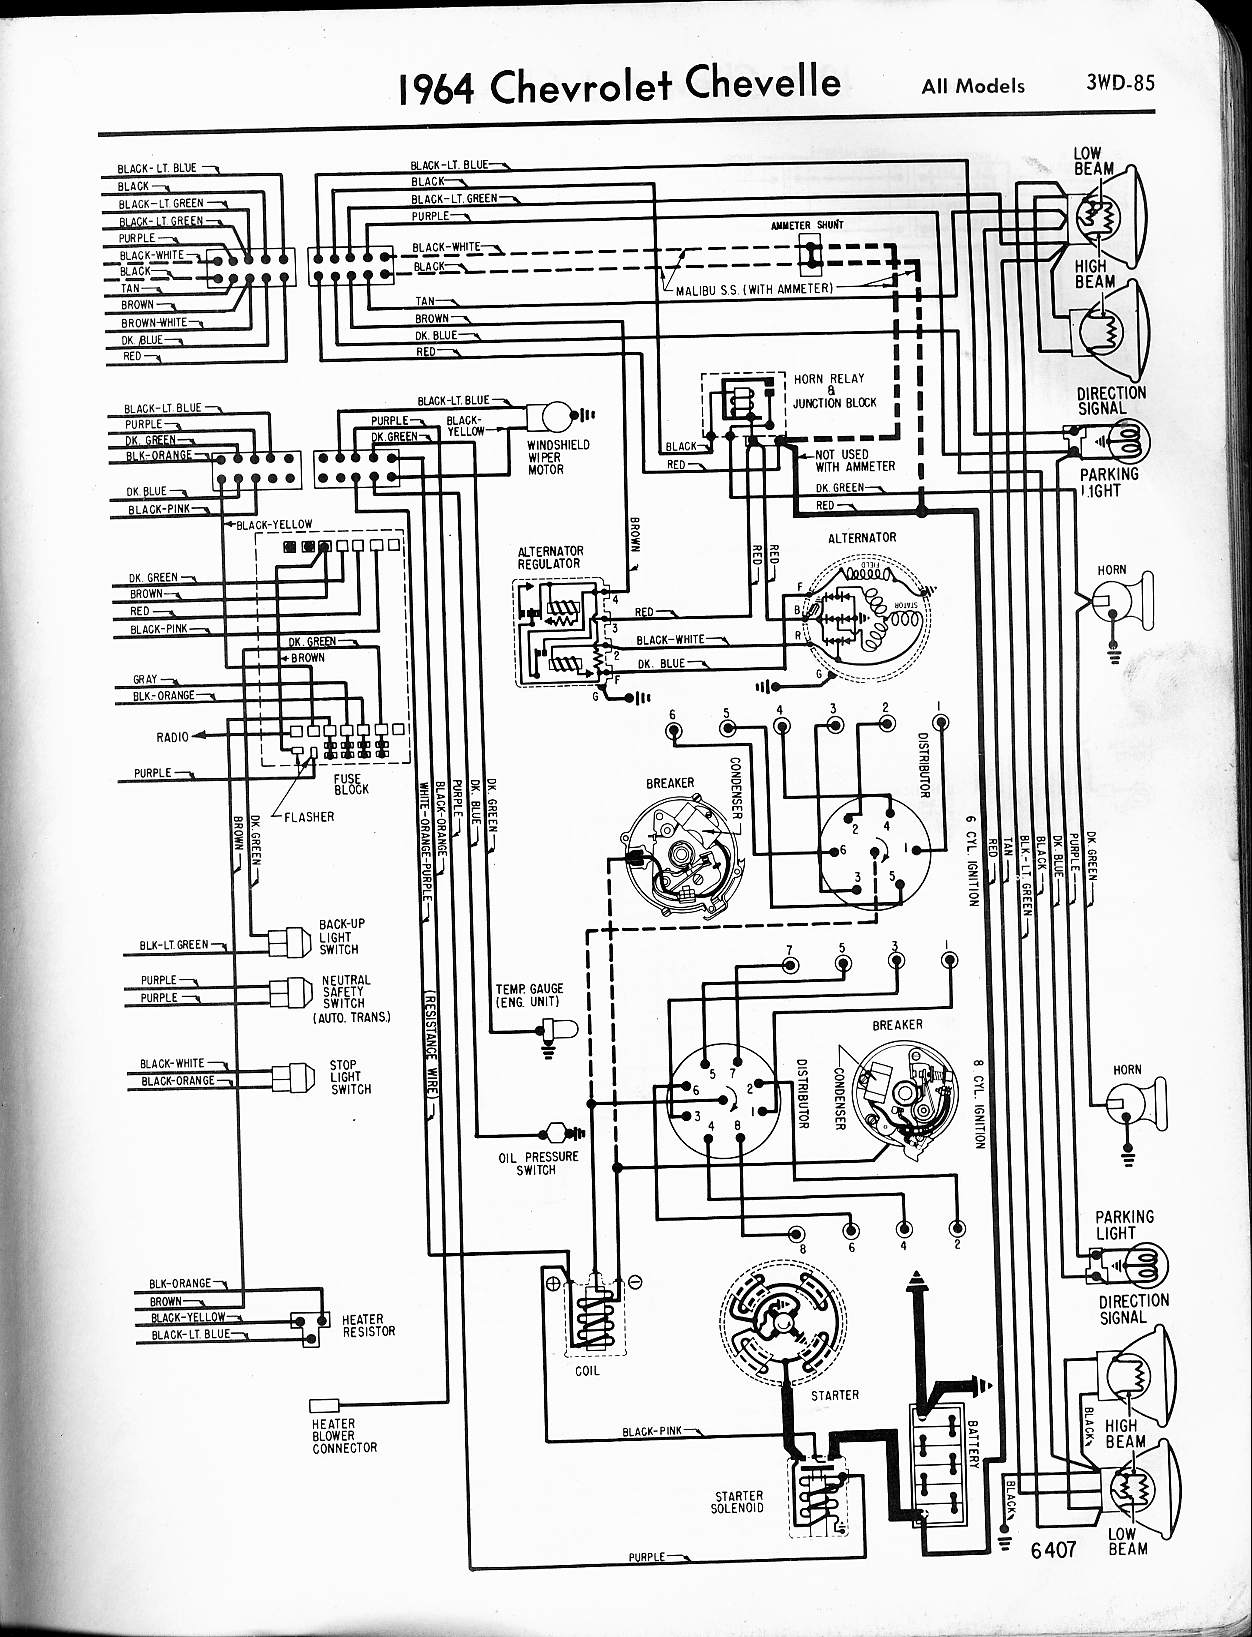 65 mustang dash wiring diagram gm one wire alternator gto harness all data 1964 best library 67 schematic 1965